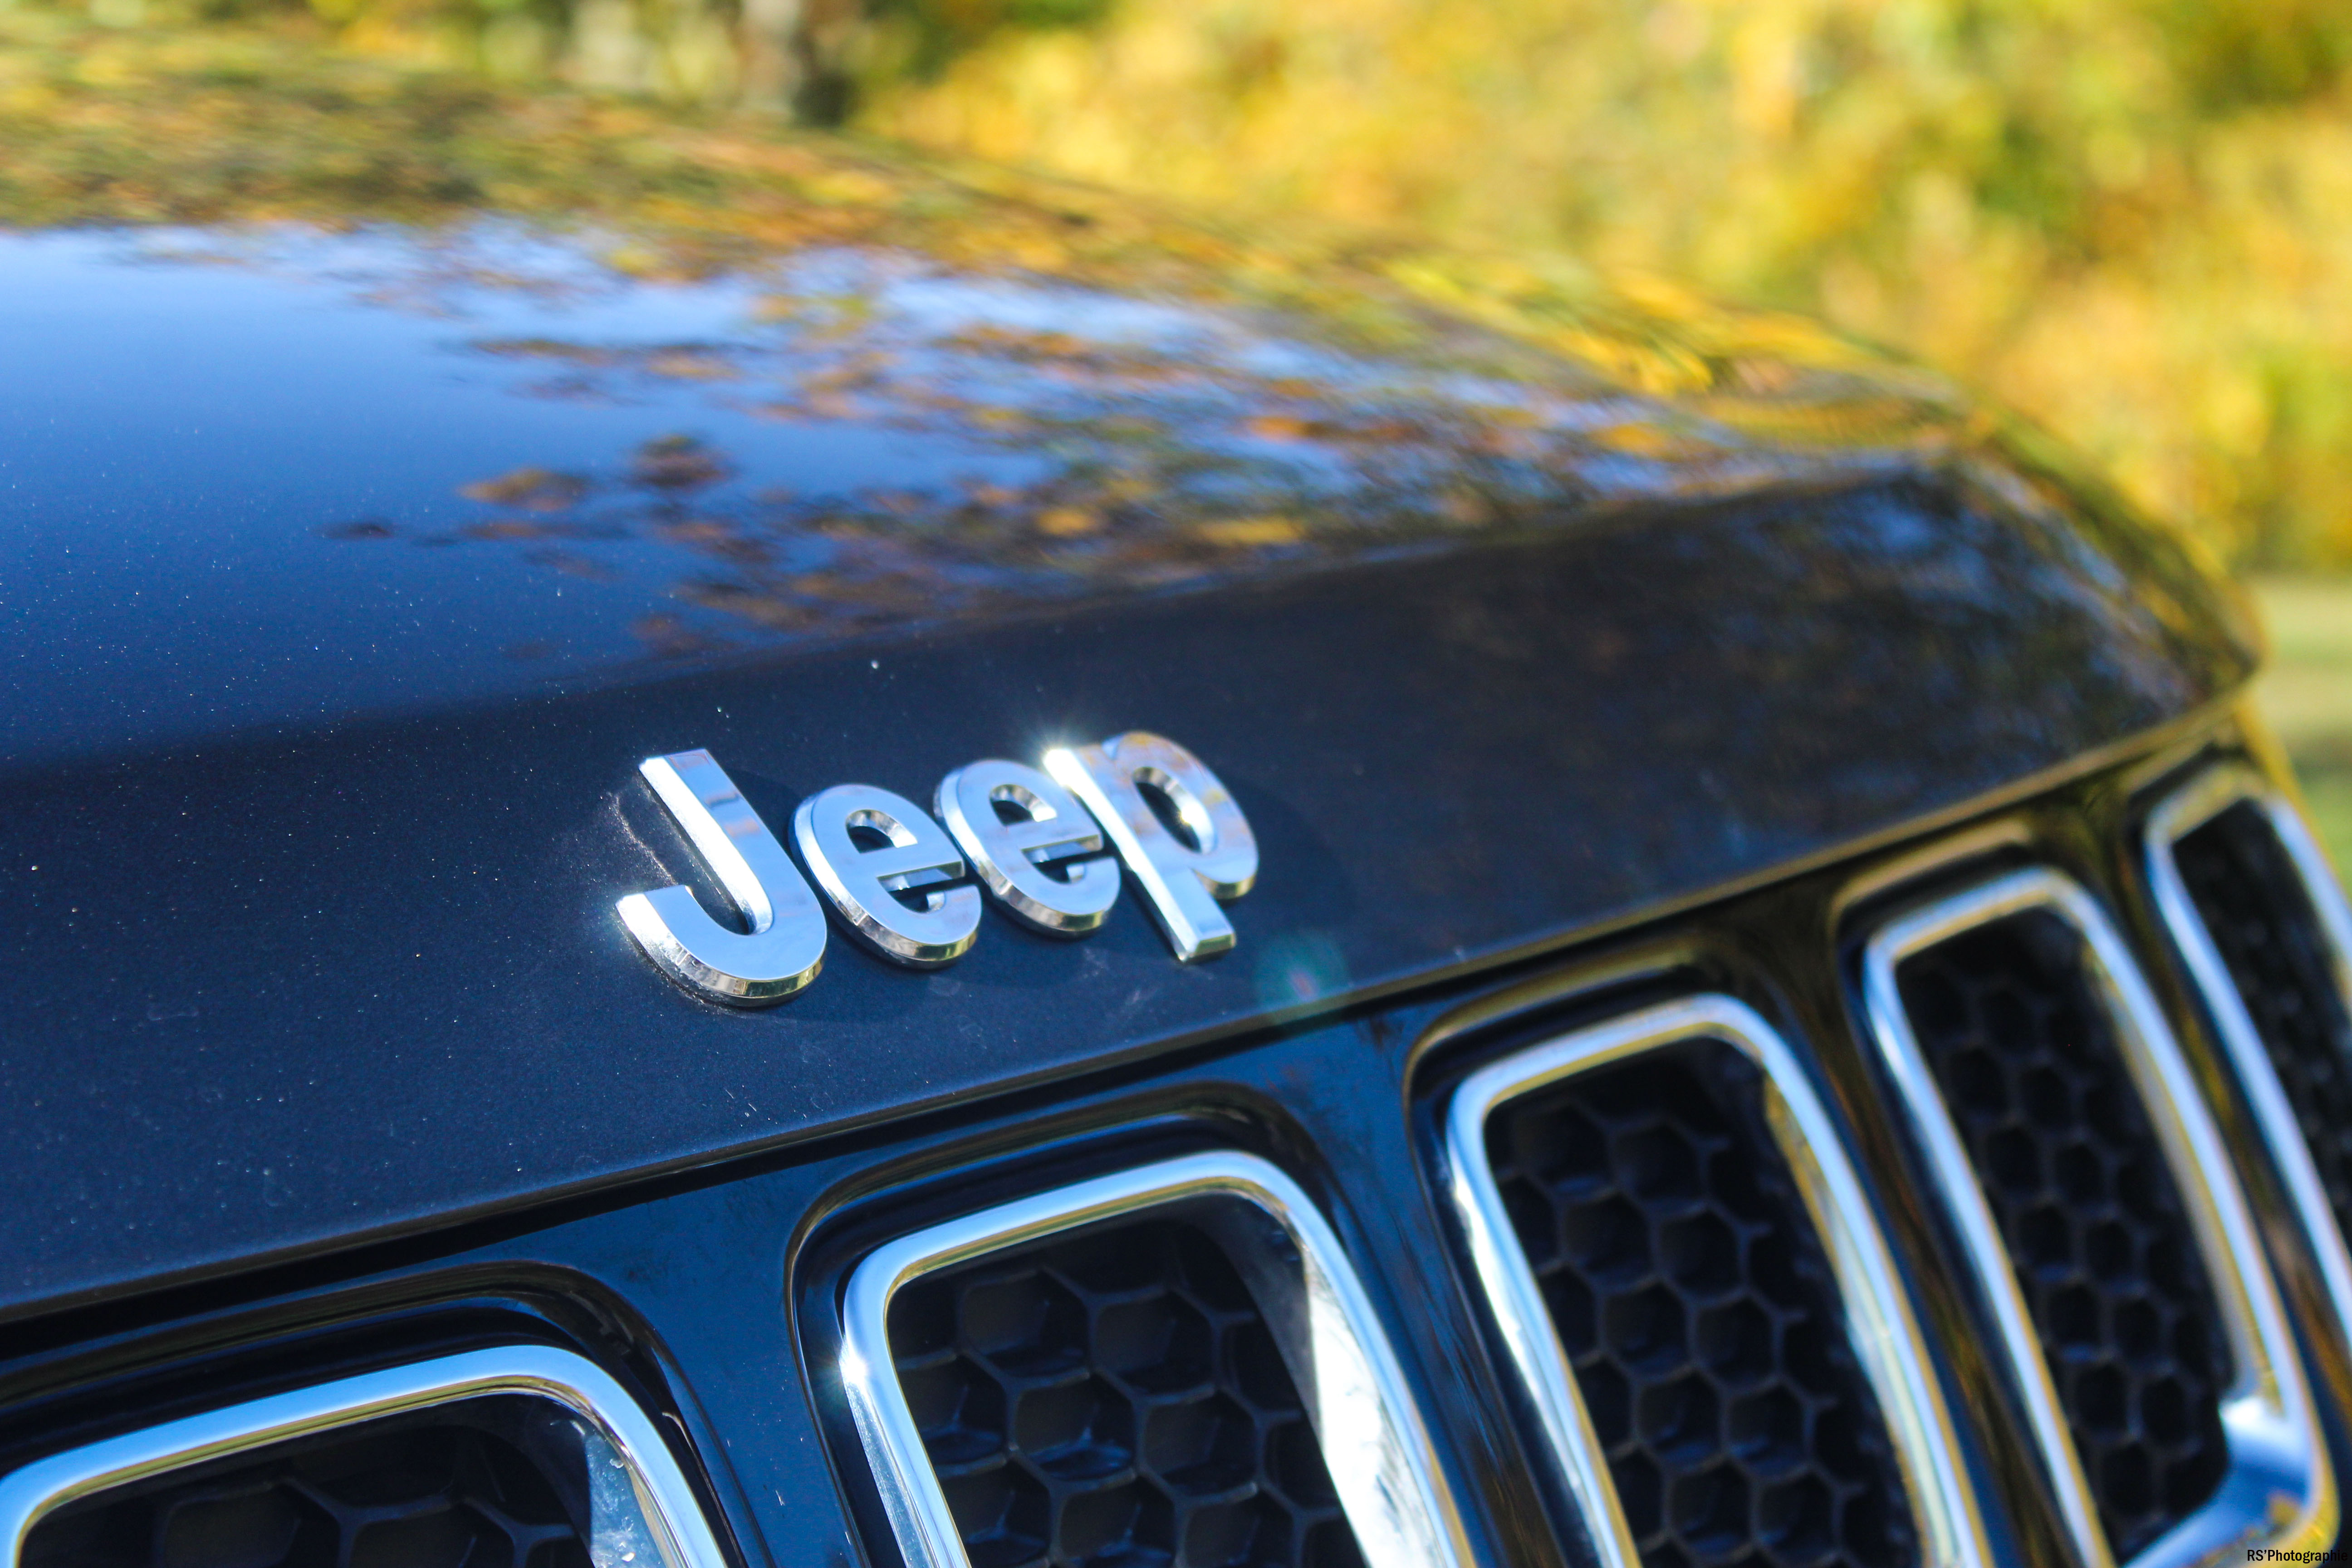 jeepcompass13-jeep-compass-avant-front-Arnaud Demasier-RSPhotographie